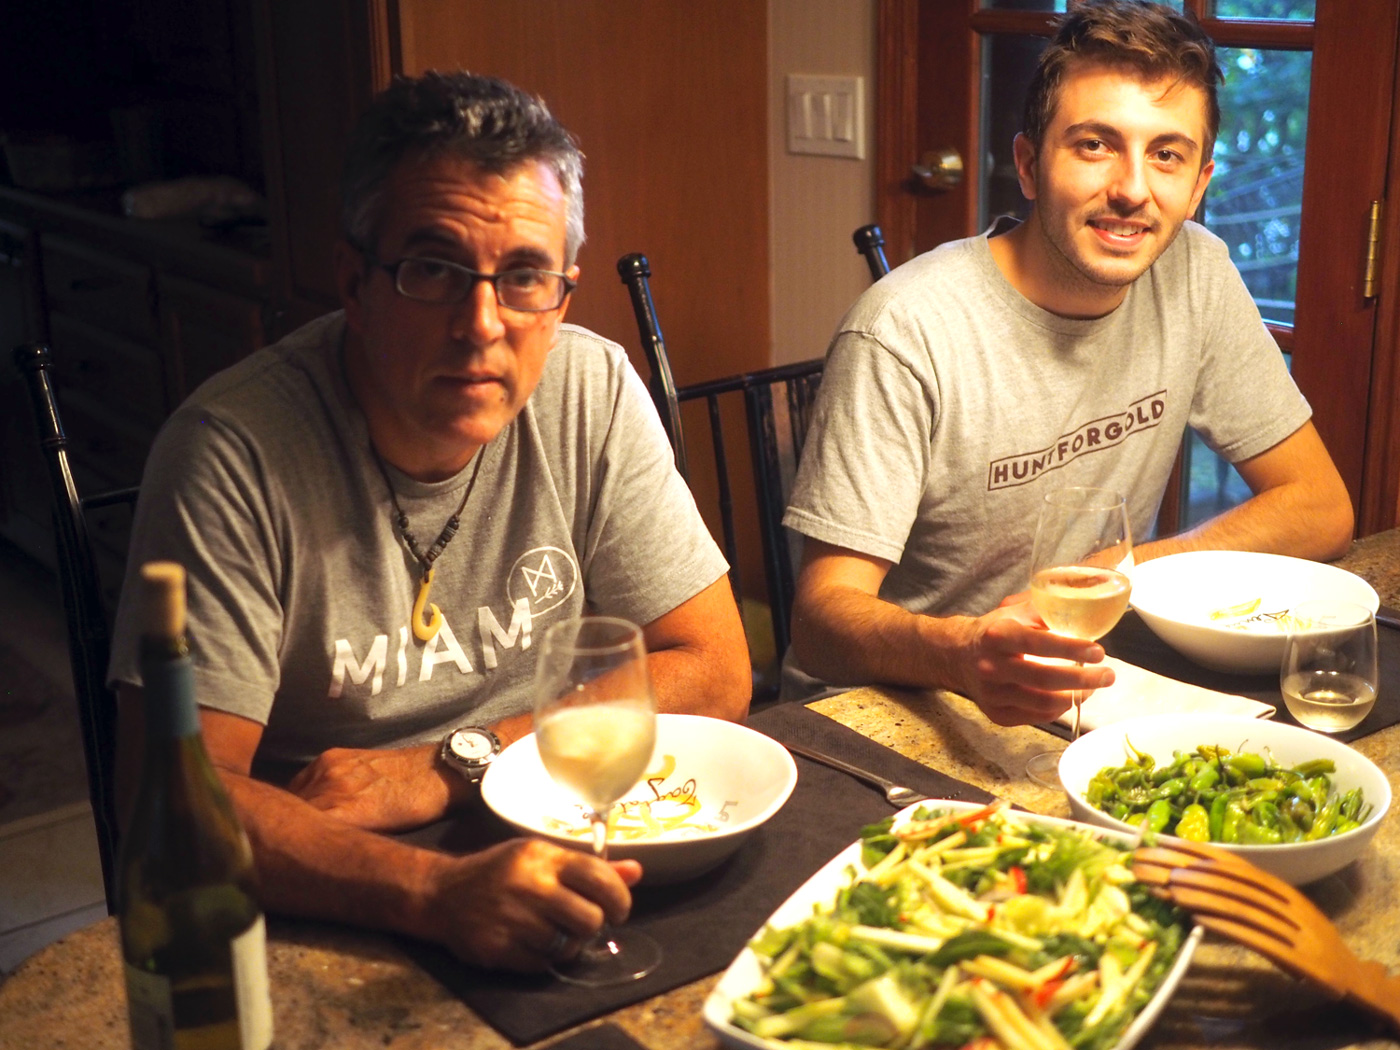 Two handsome, hungry, thought provoking men waiting for the picture to be taken so the eating can begin.